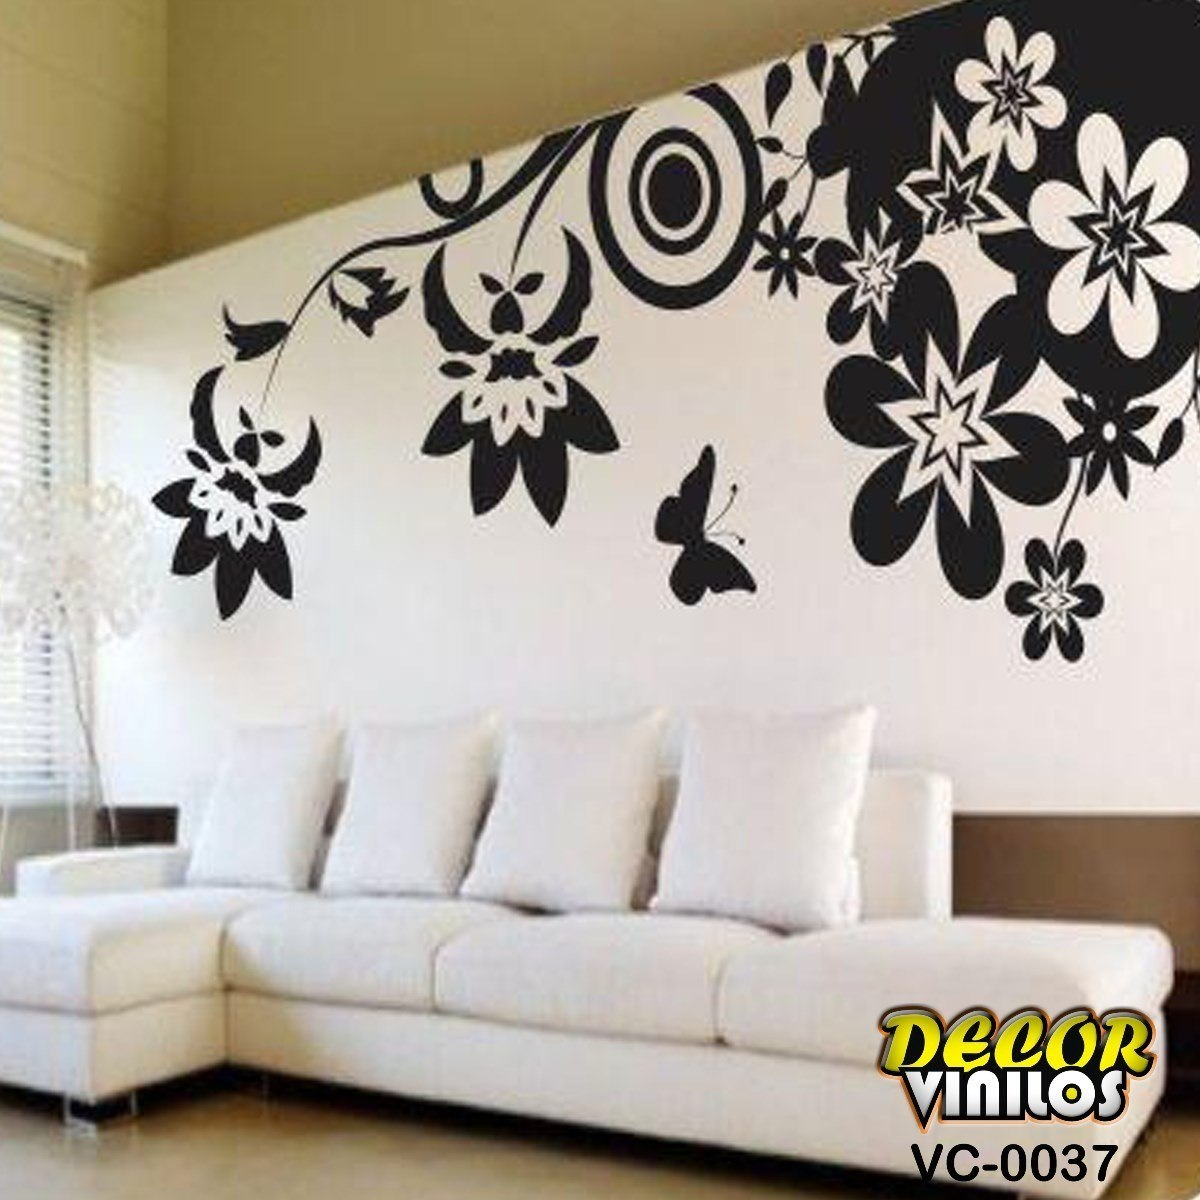 Vinilos decorativos pared vinilos pared vinilos para for Vinilos decorativos pared habitacion